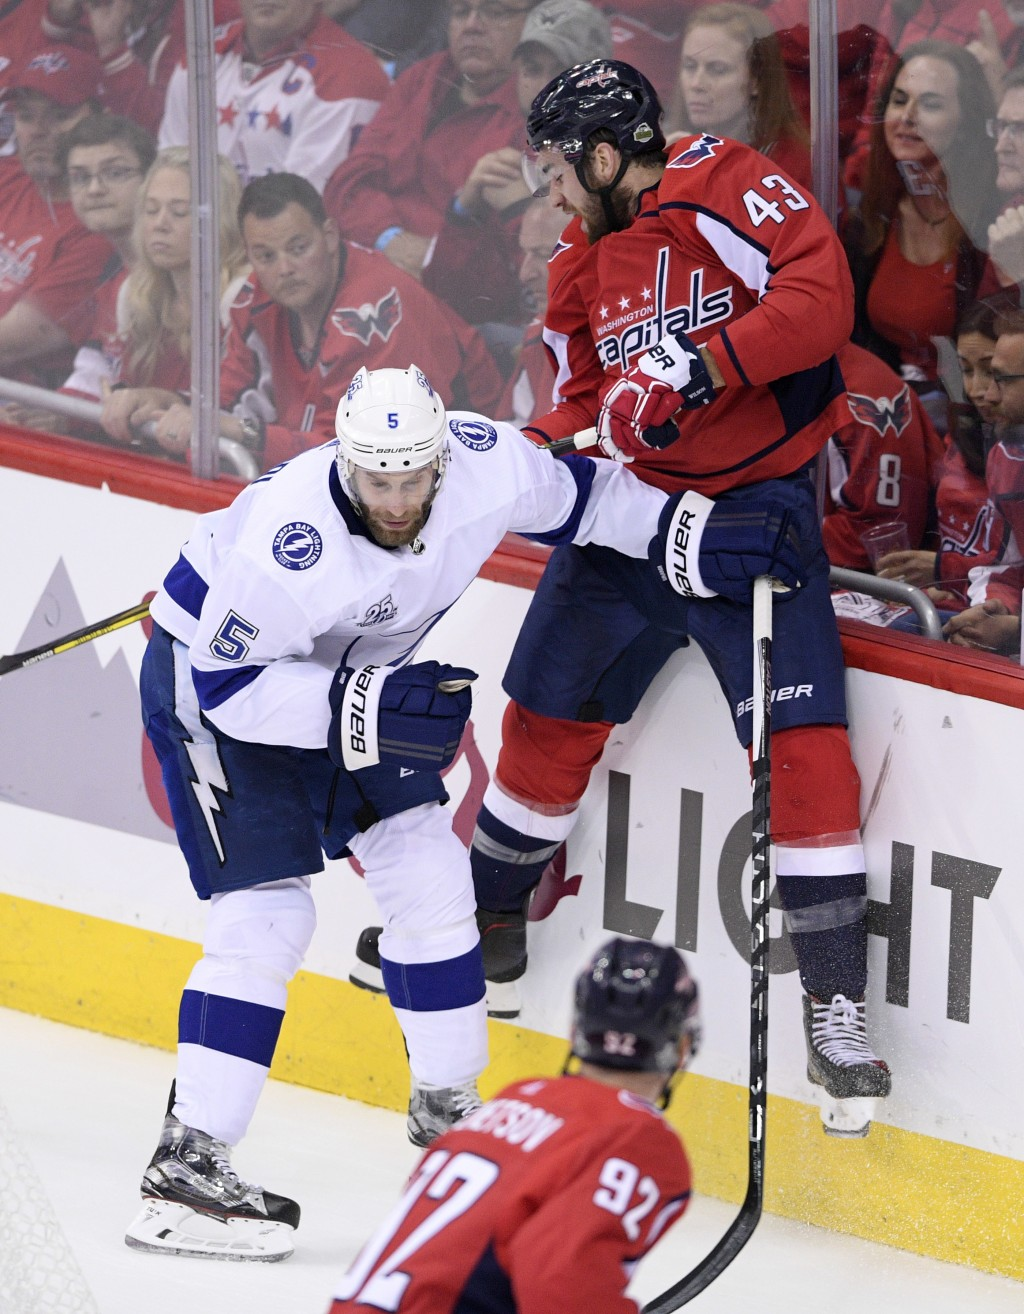 Washington Capitals right wing Tom Wilson (43) hits the boards next to Tampa Bay Lightning defenseman Dan Girardi (5) during the first period of Game